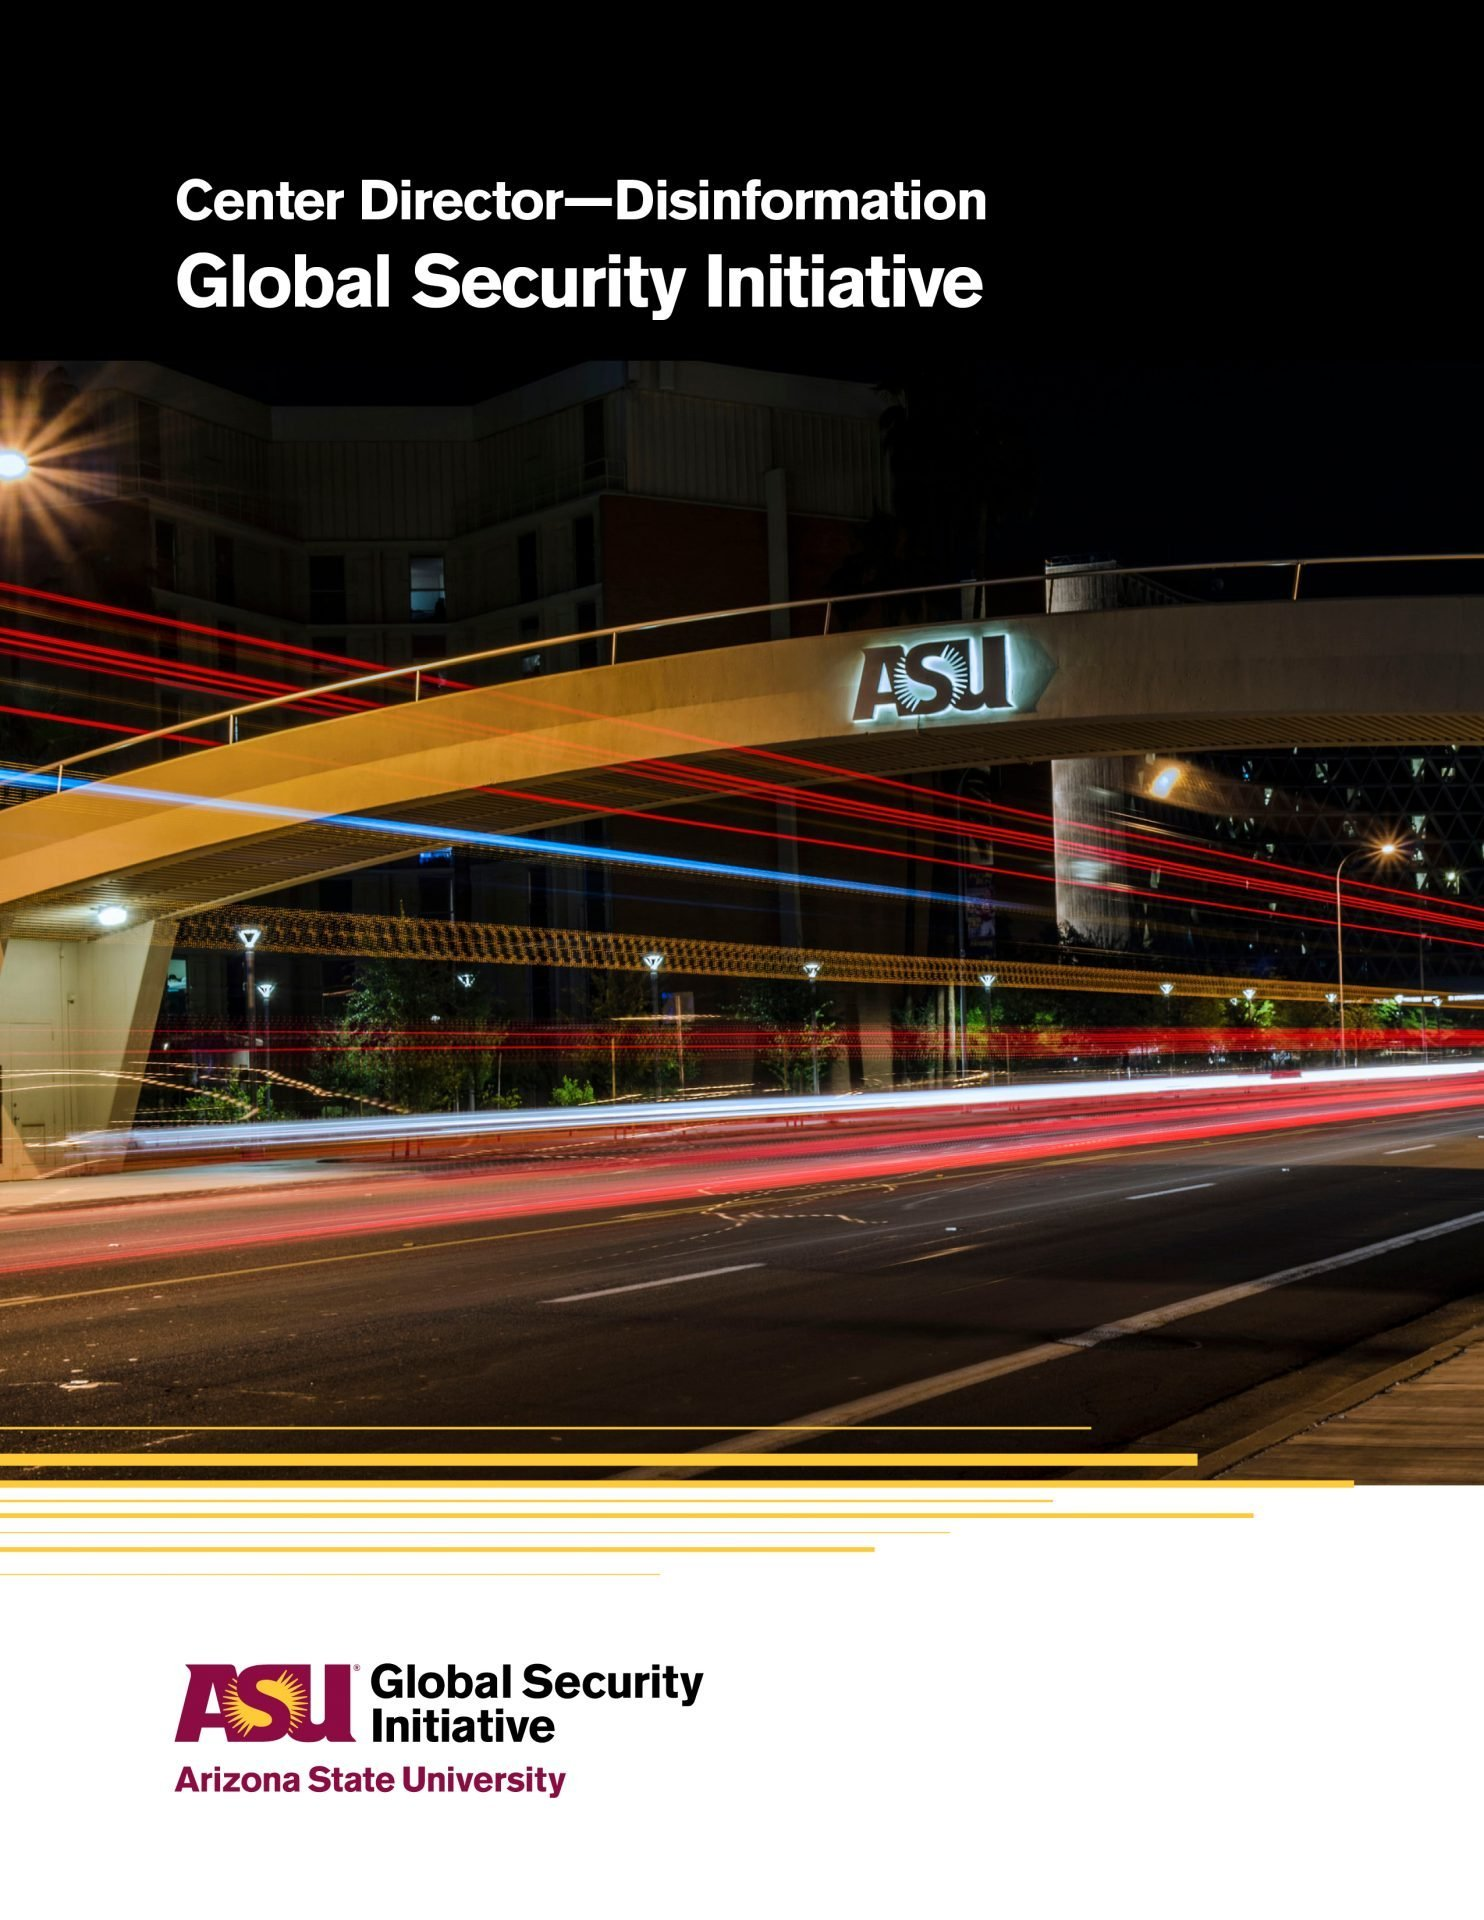 Global Security Initiative, page 11